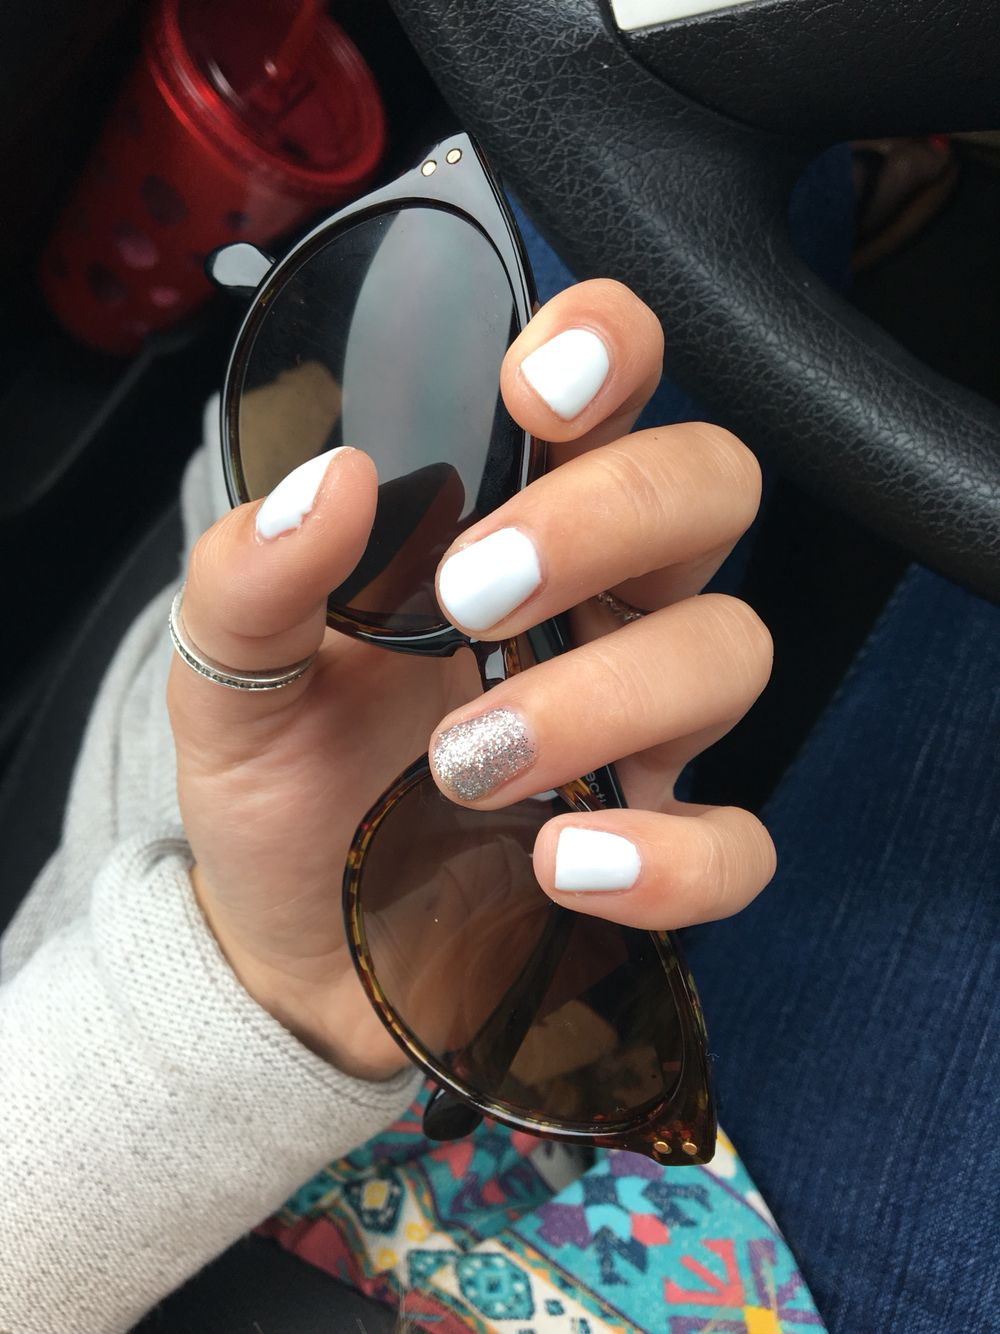 white and sparkly short gel nails nails nails nails pinterest short gel nails sparkly. Black Bedroom Furniture Sets. Home Design Ideas